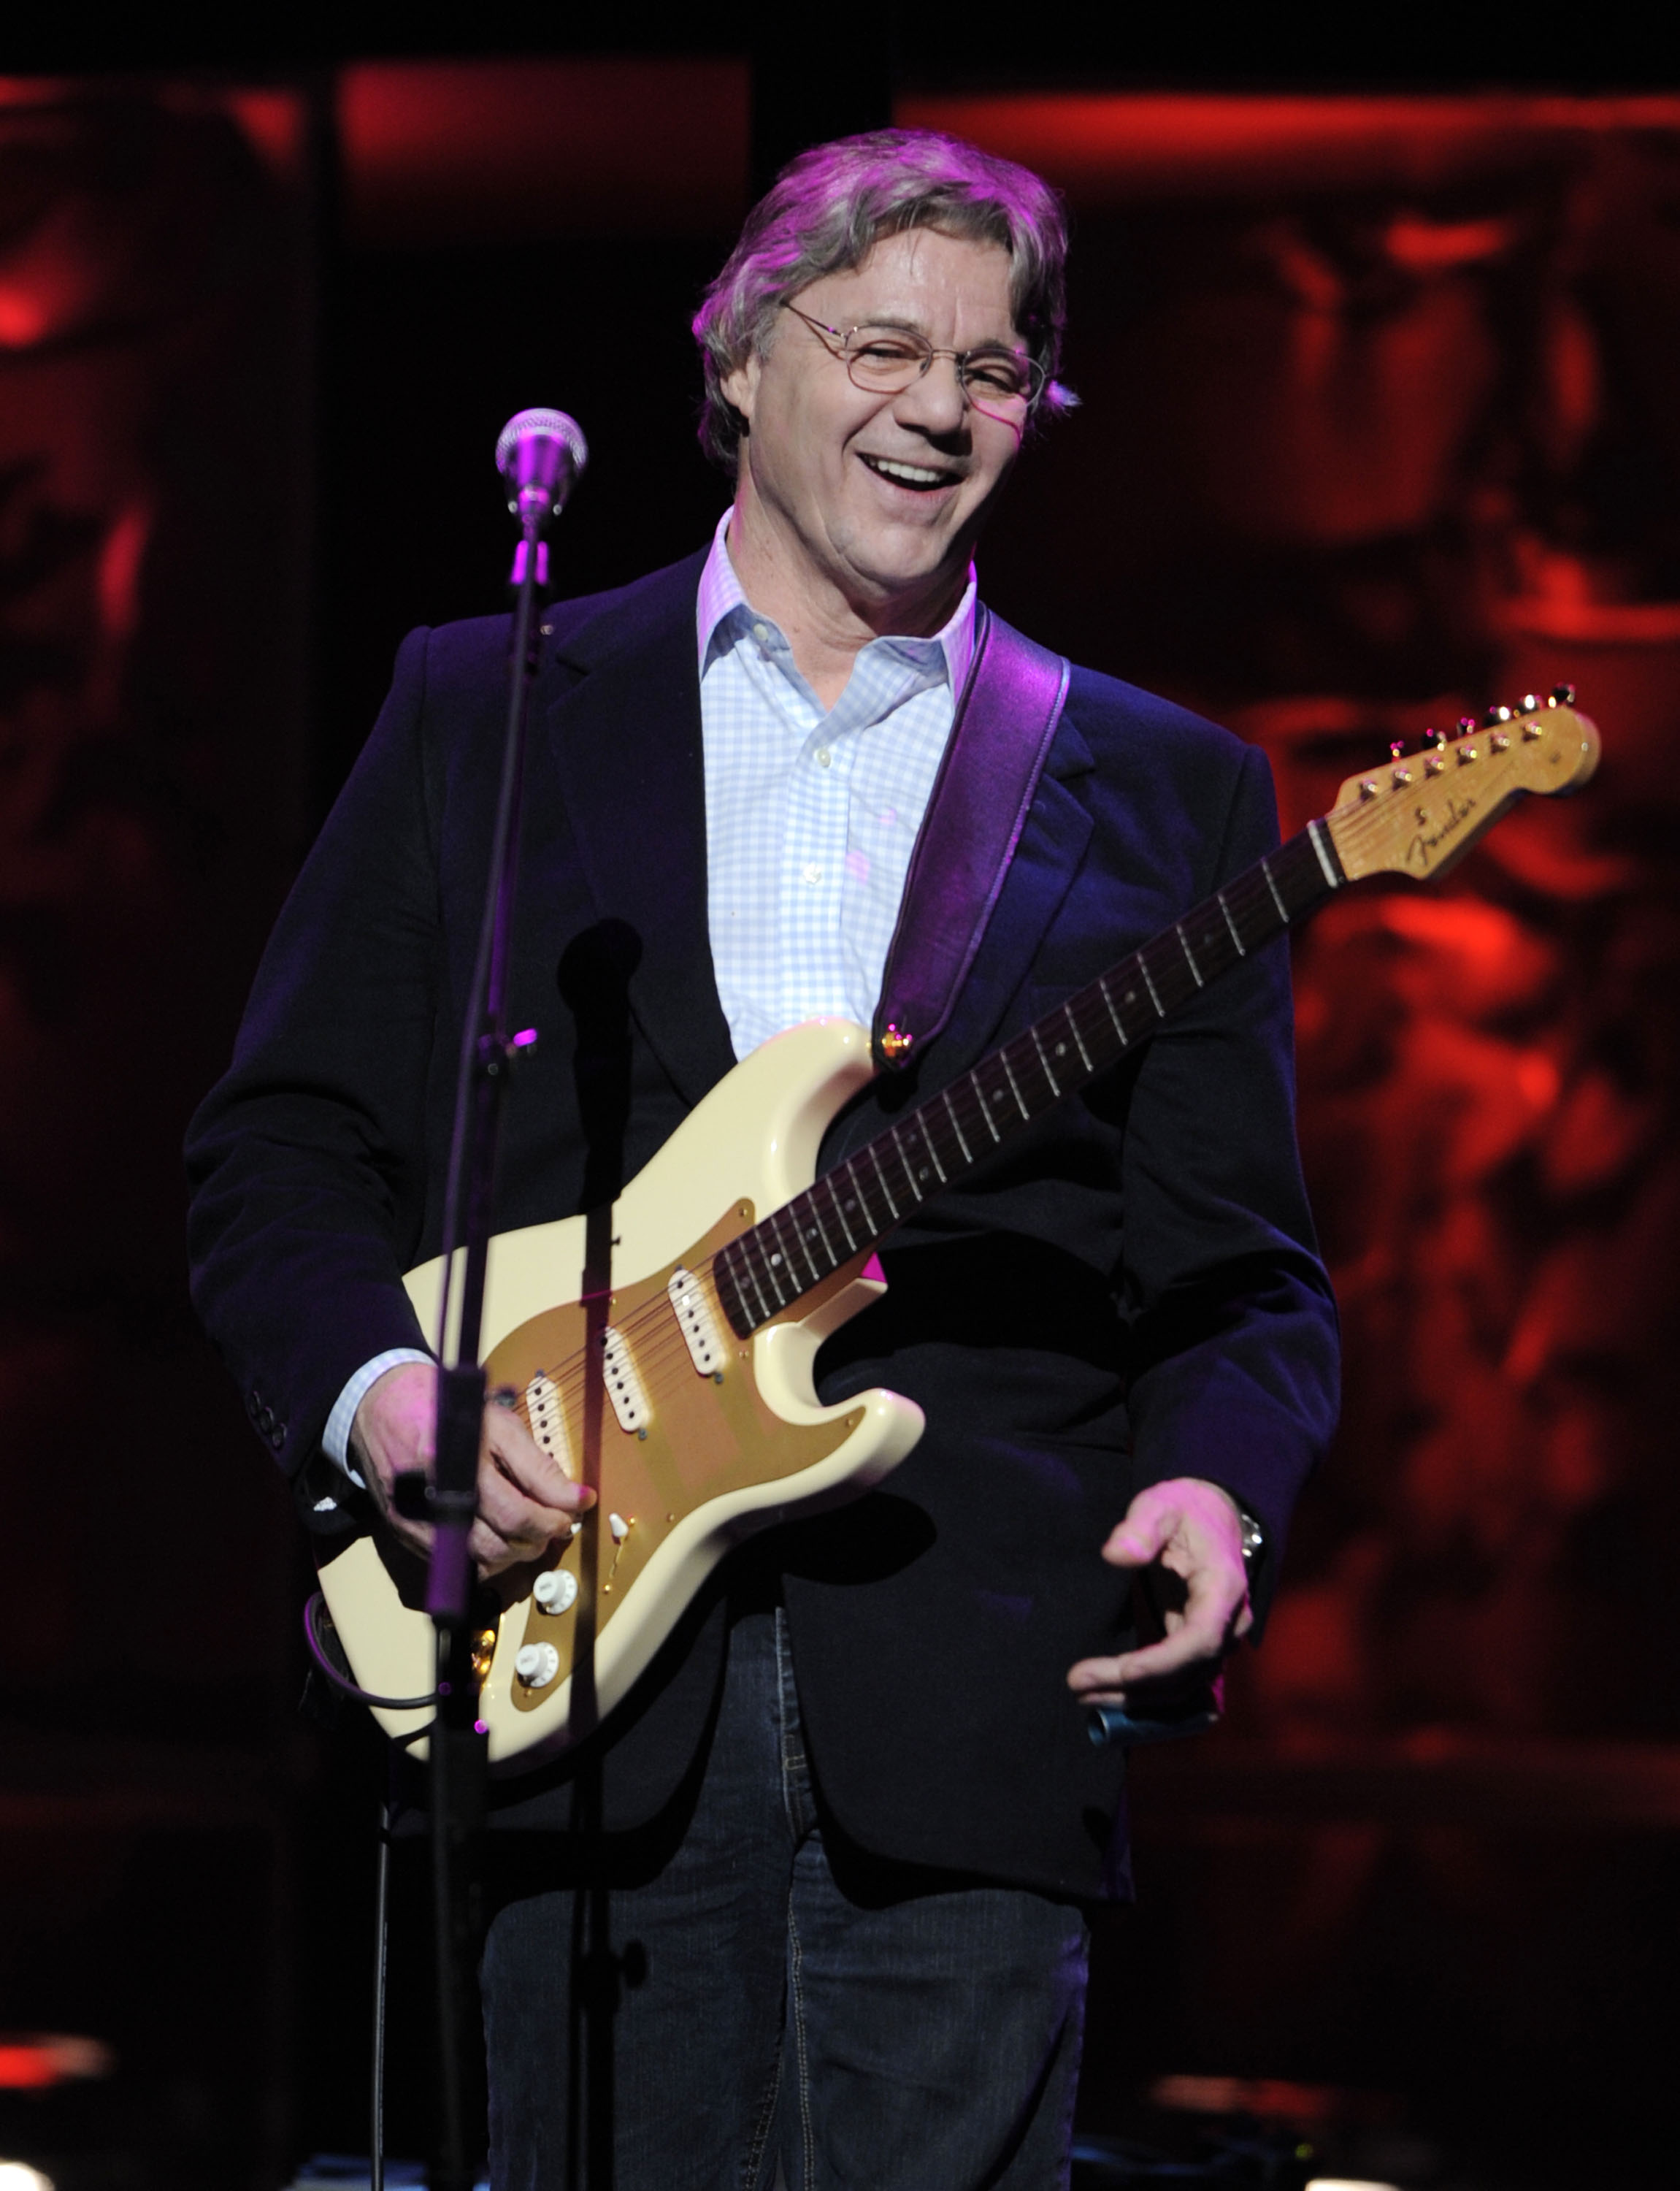 In this April 9, 2008, file photo, Steve Miller performs at the 25th annual ASCAP Pop Music Awards, in Los Angeles. The groundbreaking Los Angeles rap act N.W.A. will join a quartet of 1970s era FM radio rockers, Chicago, Cheap Trick, Deep Purple and Steve Miller as 2016 inductees into the Rock and Roll Hall of Fame announced Thursday, Dec. 17, 2015. (AP Photos/Mark J. Terrill, File)